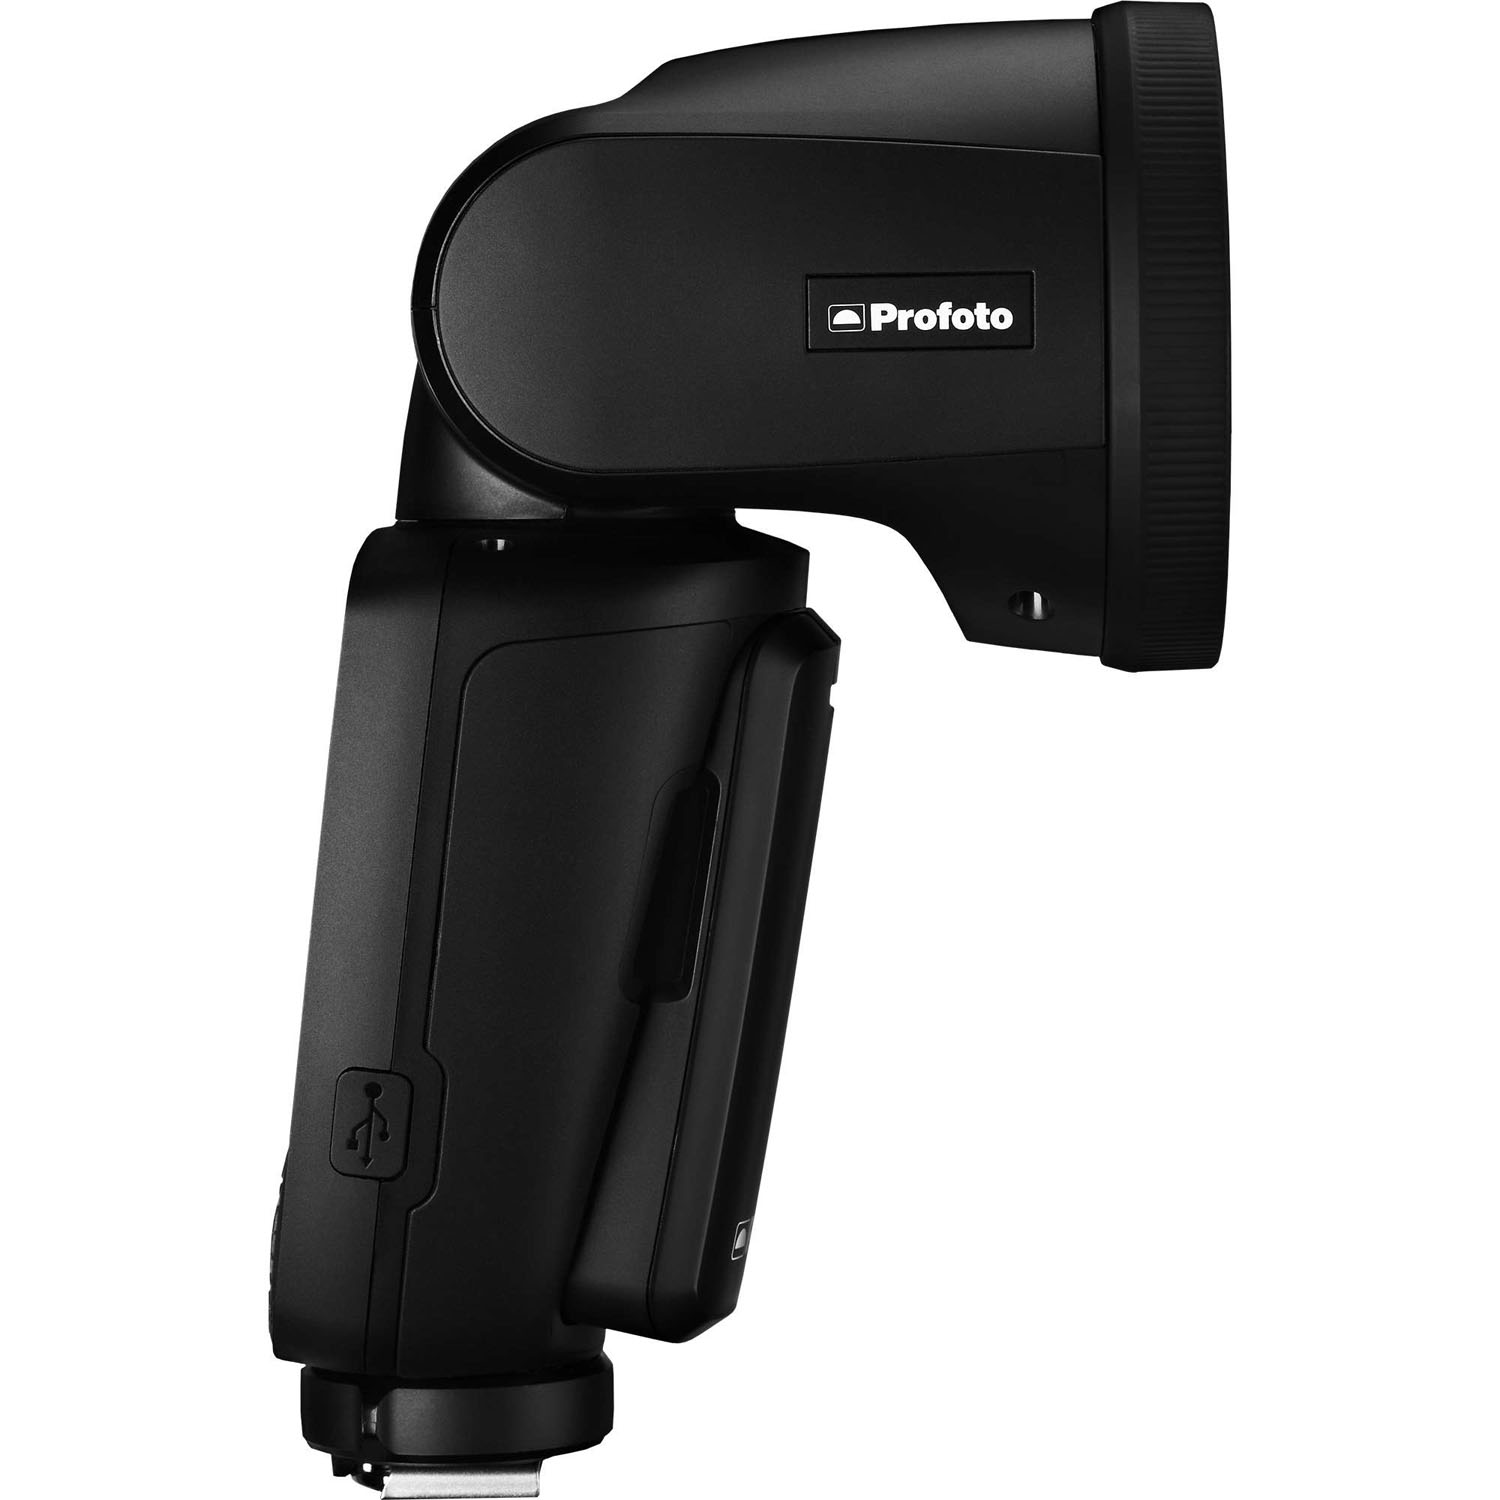 فلاش پروفوتو نیکونی Profoto A1 AirTTL-C Studio Light for Nikon     A1-Air